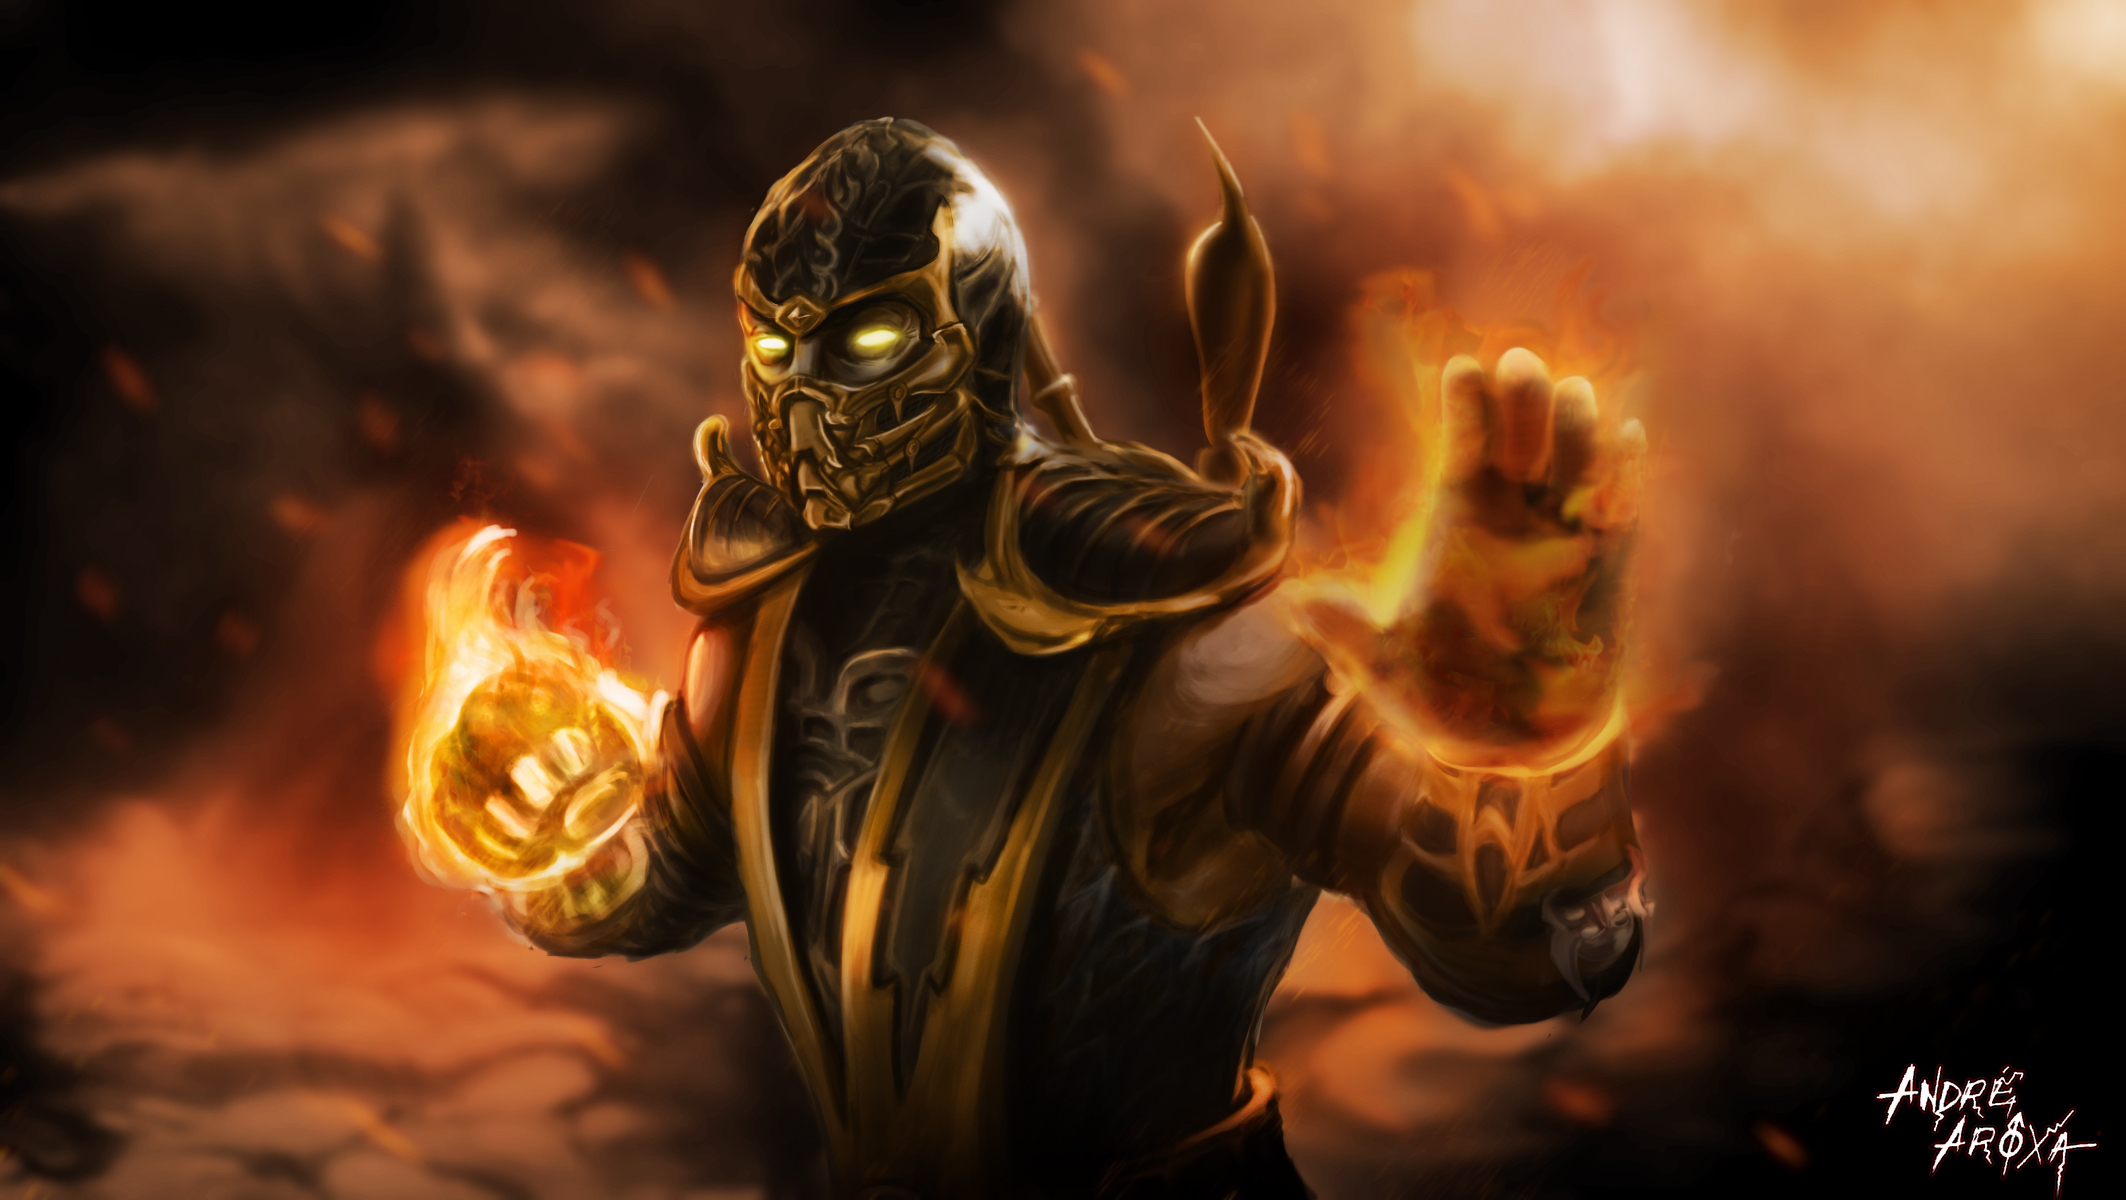 207 mortal kombat hd wallpapers | background images - wallpaper abyss